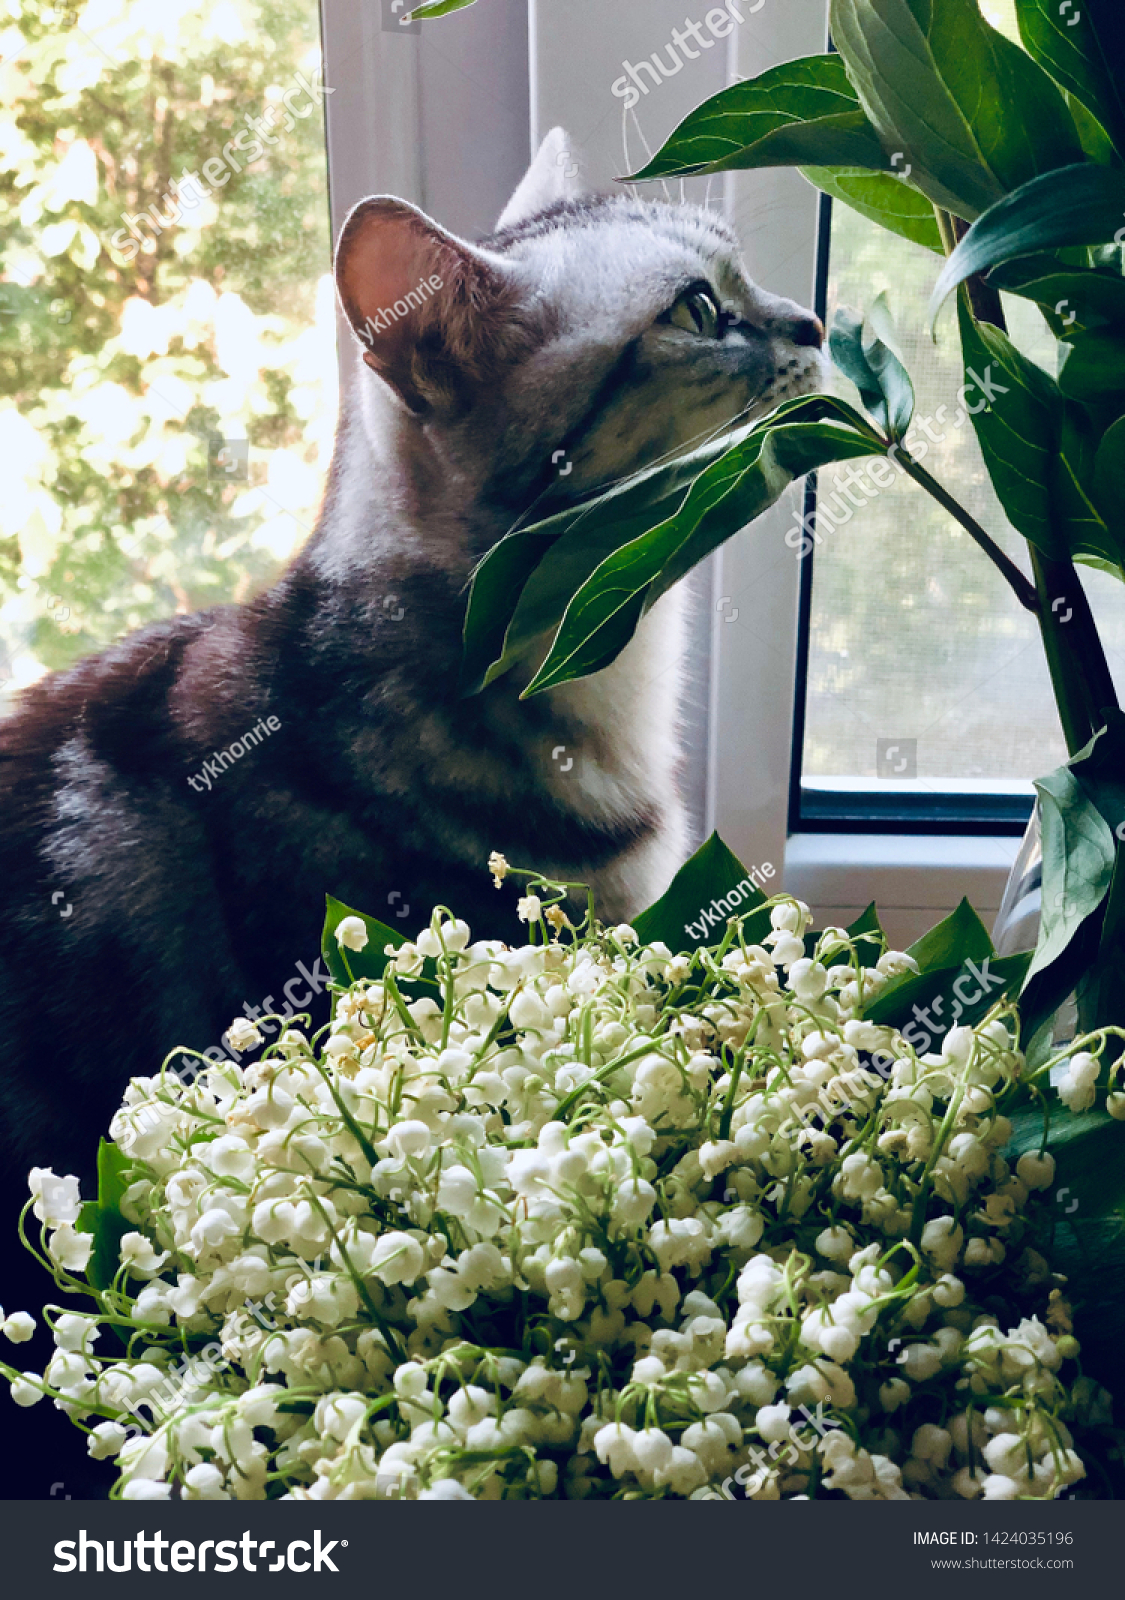 American shorthair cat sitting on the window silly smell the summer flowers lily of the valley, peony. Silver tabby kitty animal pet closeup.